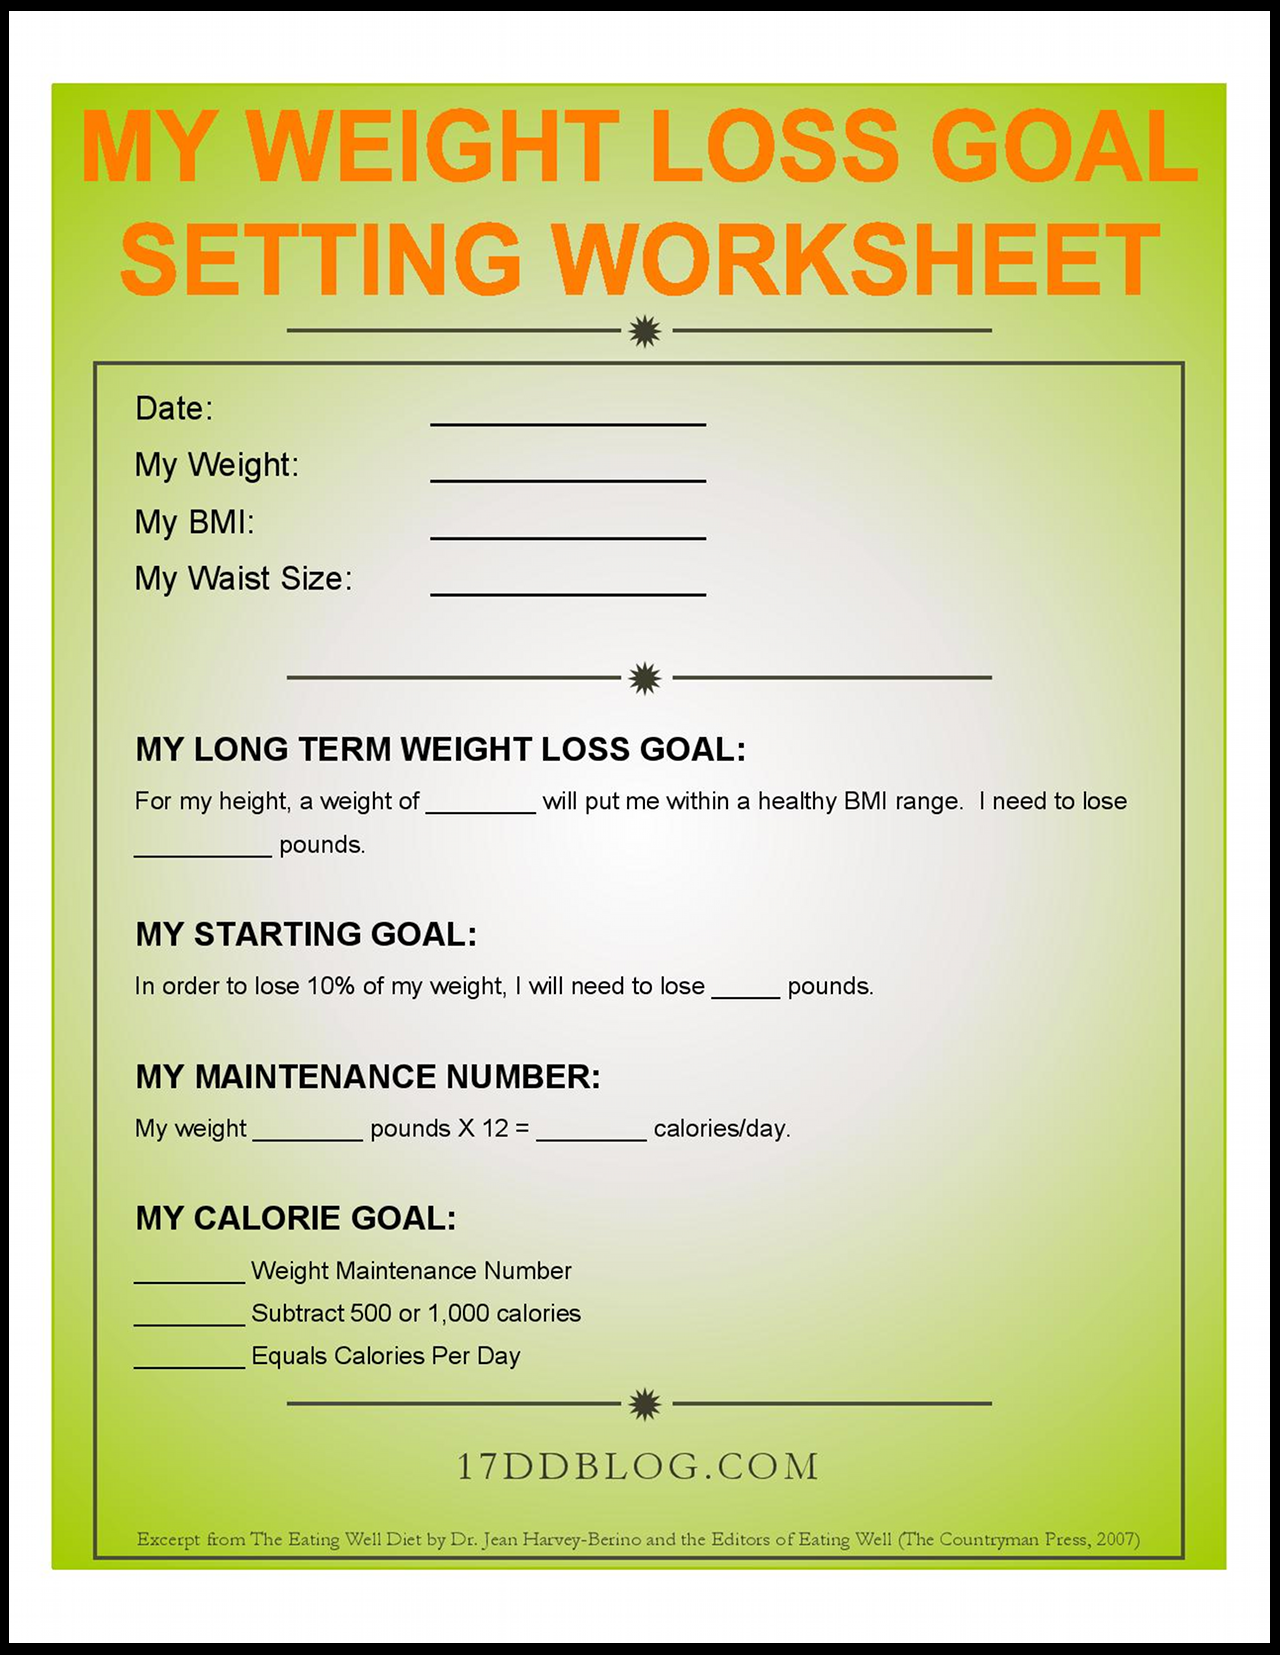 my weight loss goal setting worksheet free pdf download body building fitness pinterest. Black Bedroom Furniture Sets. Home Design Ideas